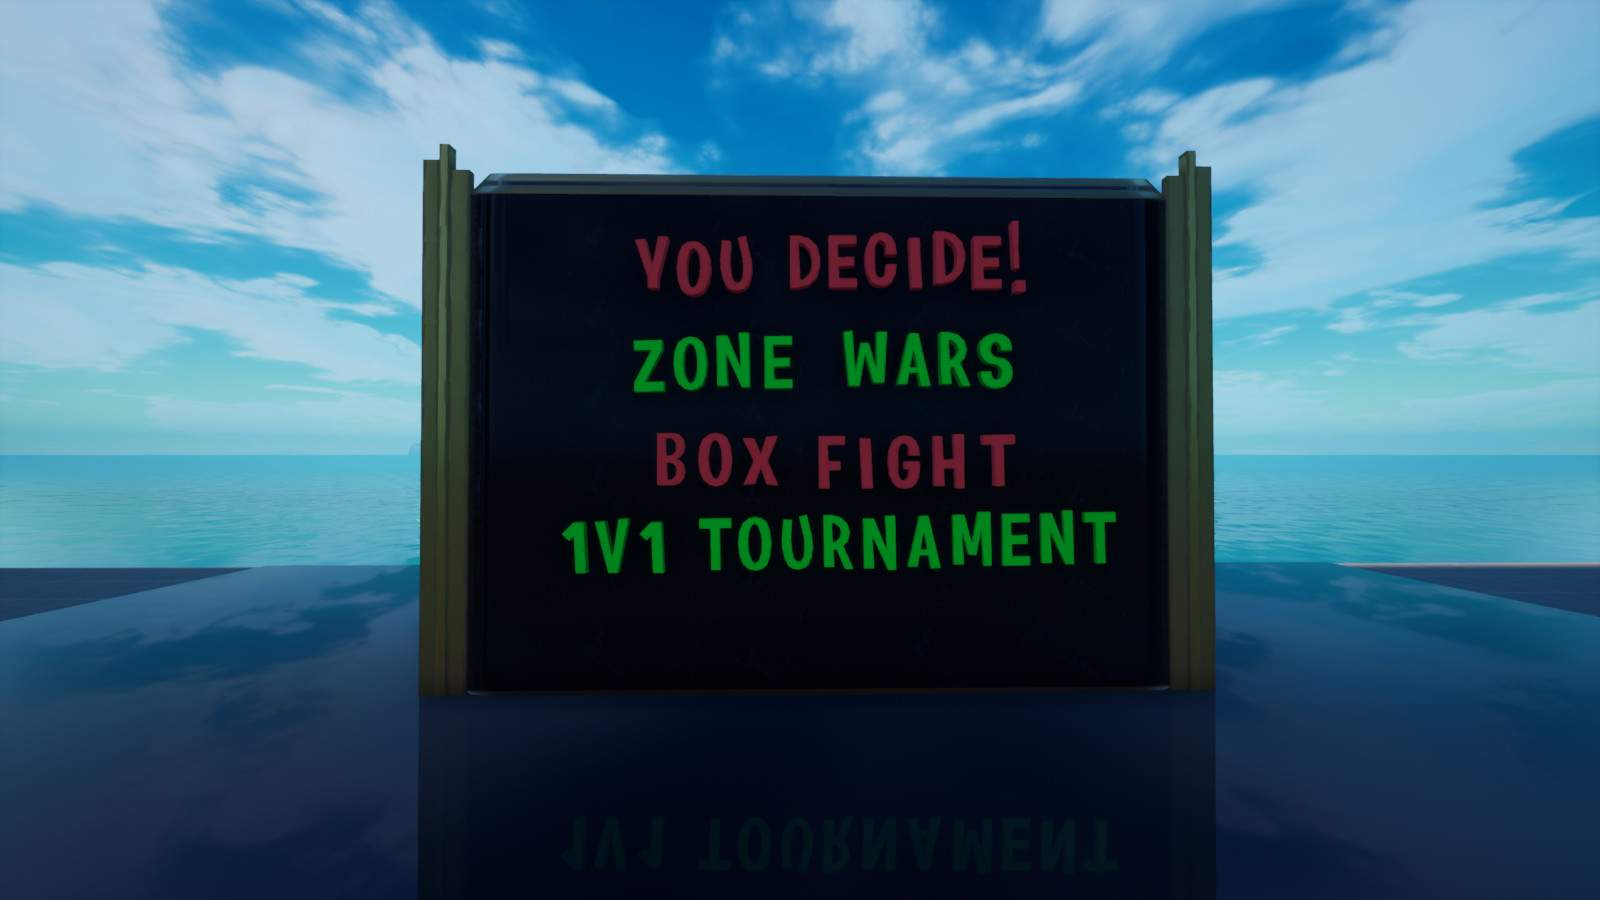 YOU DECIDE! ZONEWARS/BOXFIGHT/TOURNAMENT